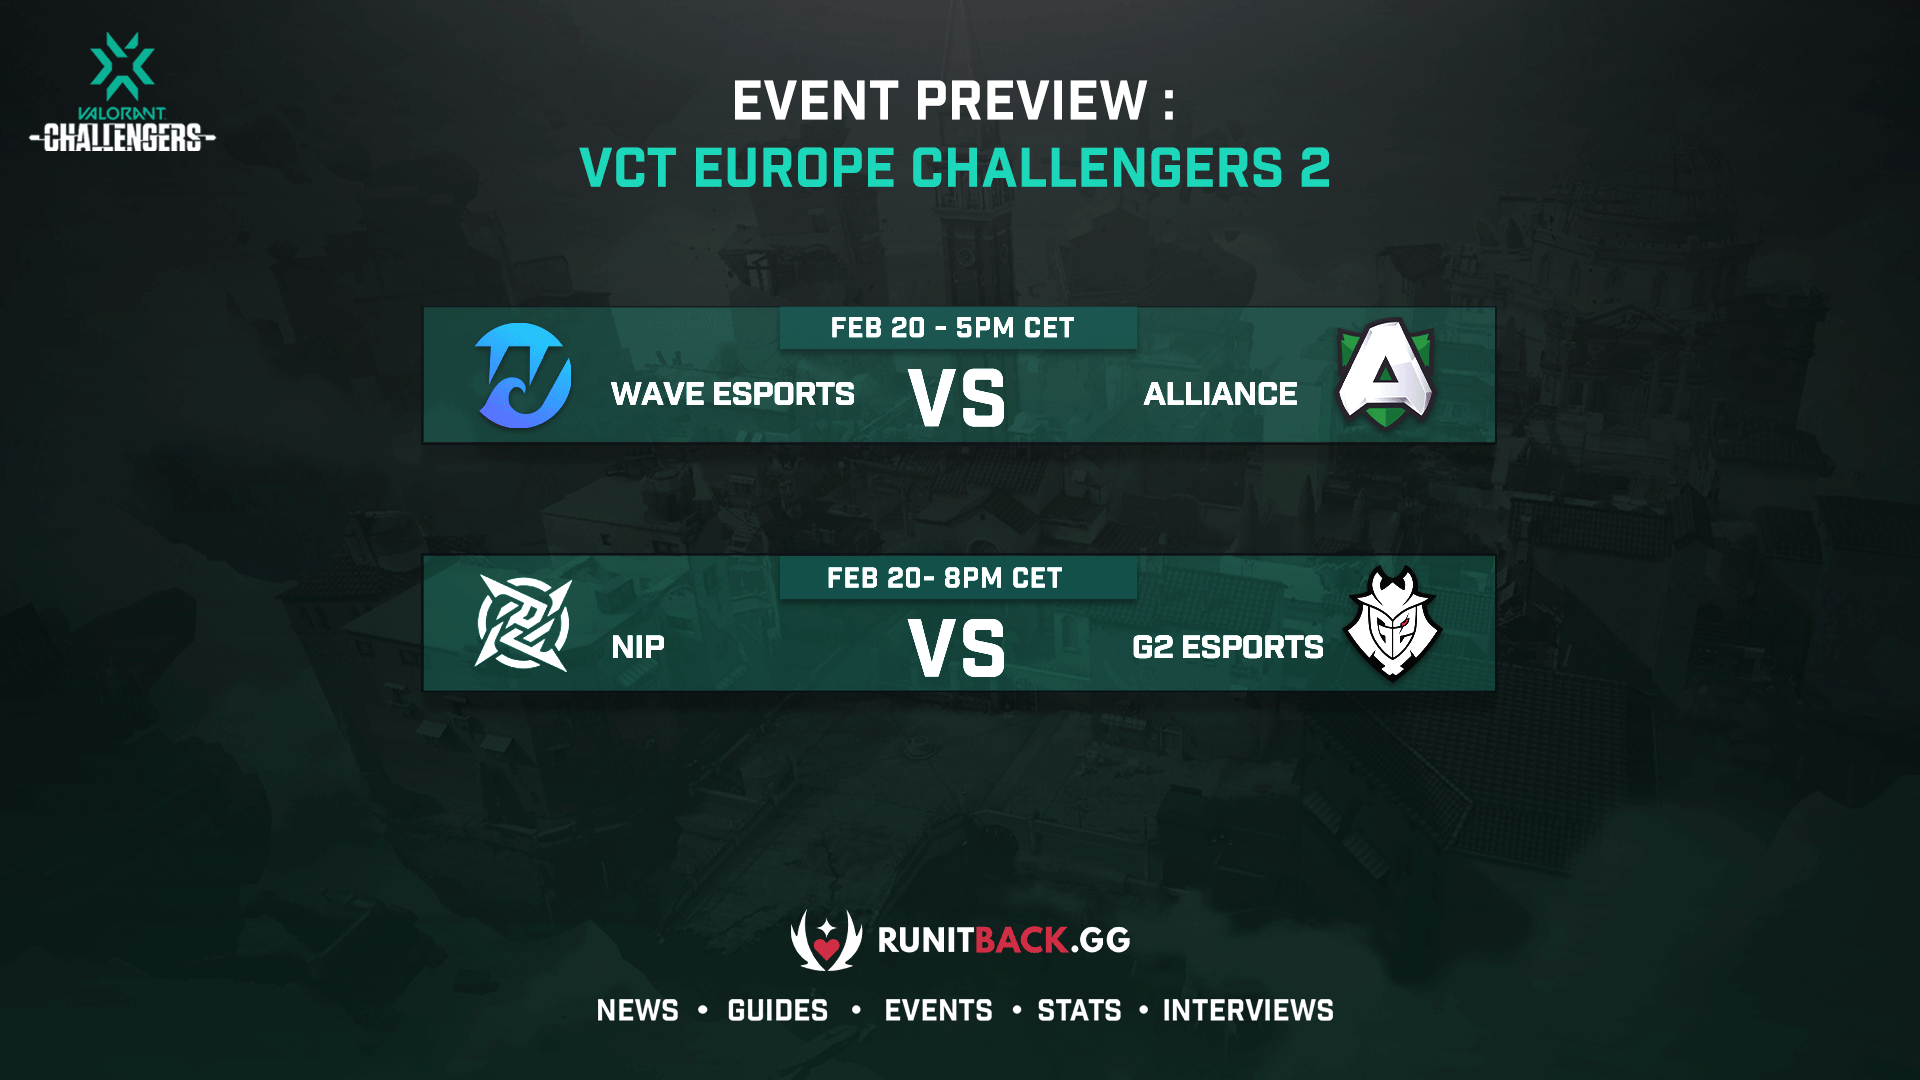 VCT Europe Challengers 2 Day 1 Preview: G2 seek revenge, Wave and Alliance clash